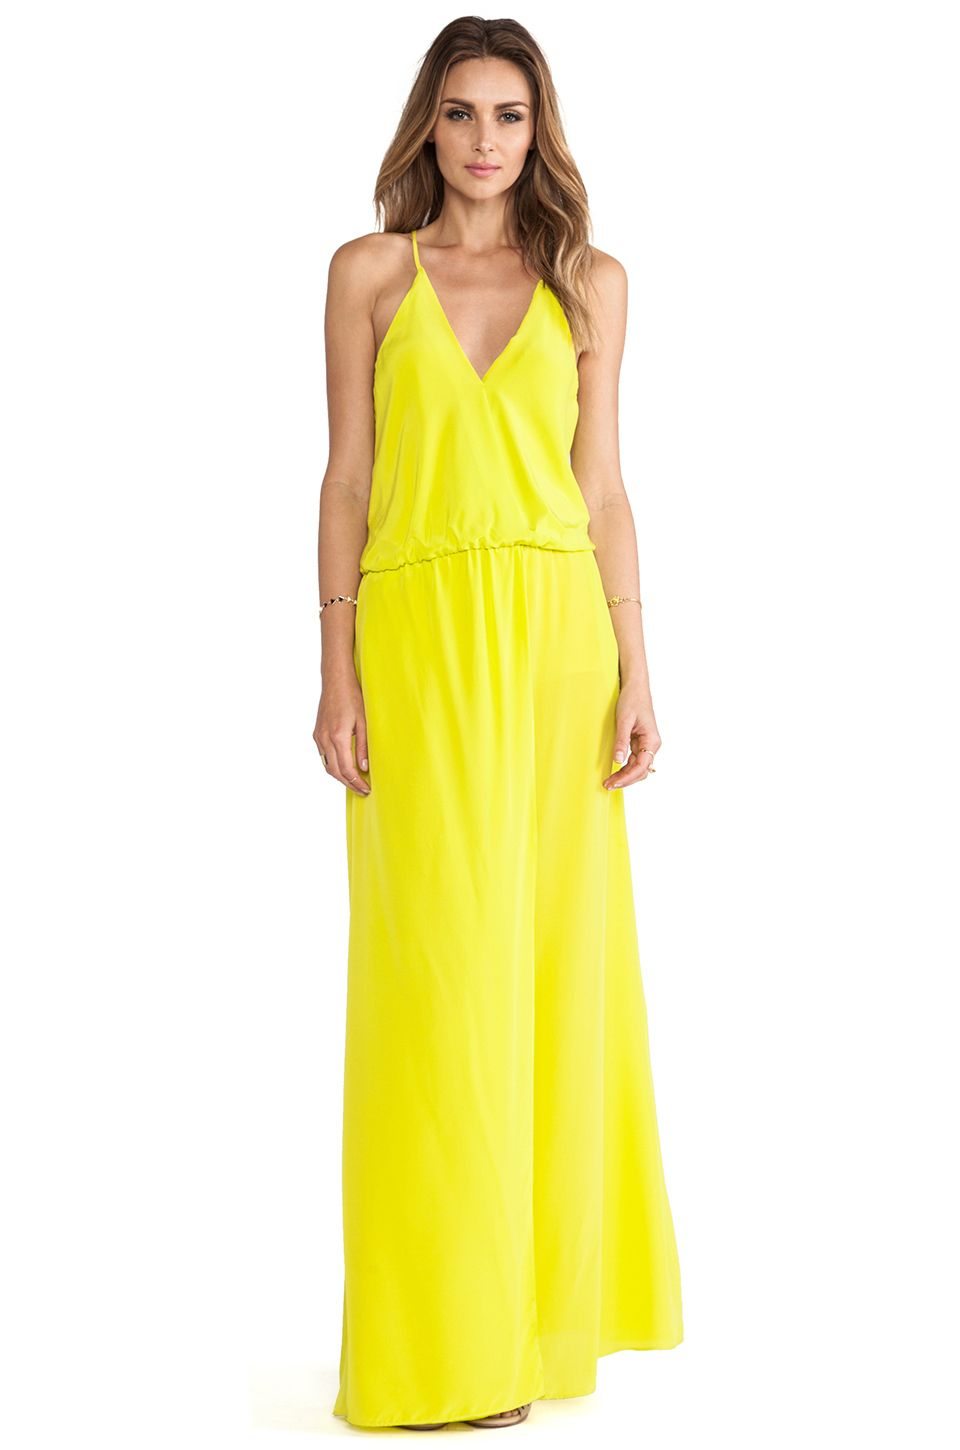 Beach Wedding Guest Dress To Buy REVOLVEclothing